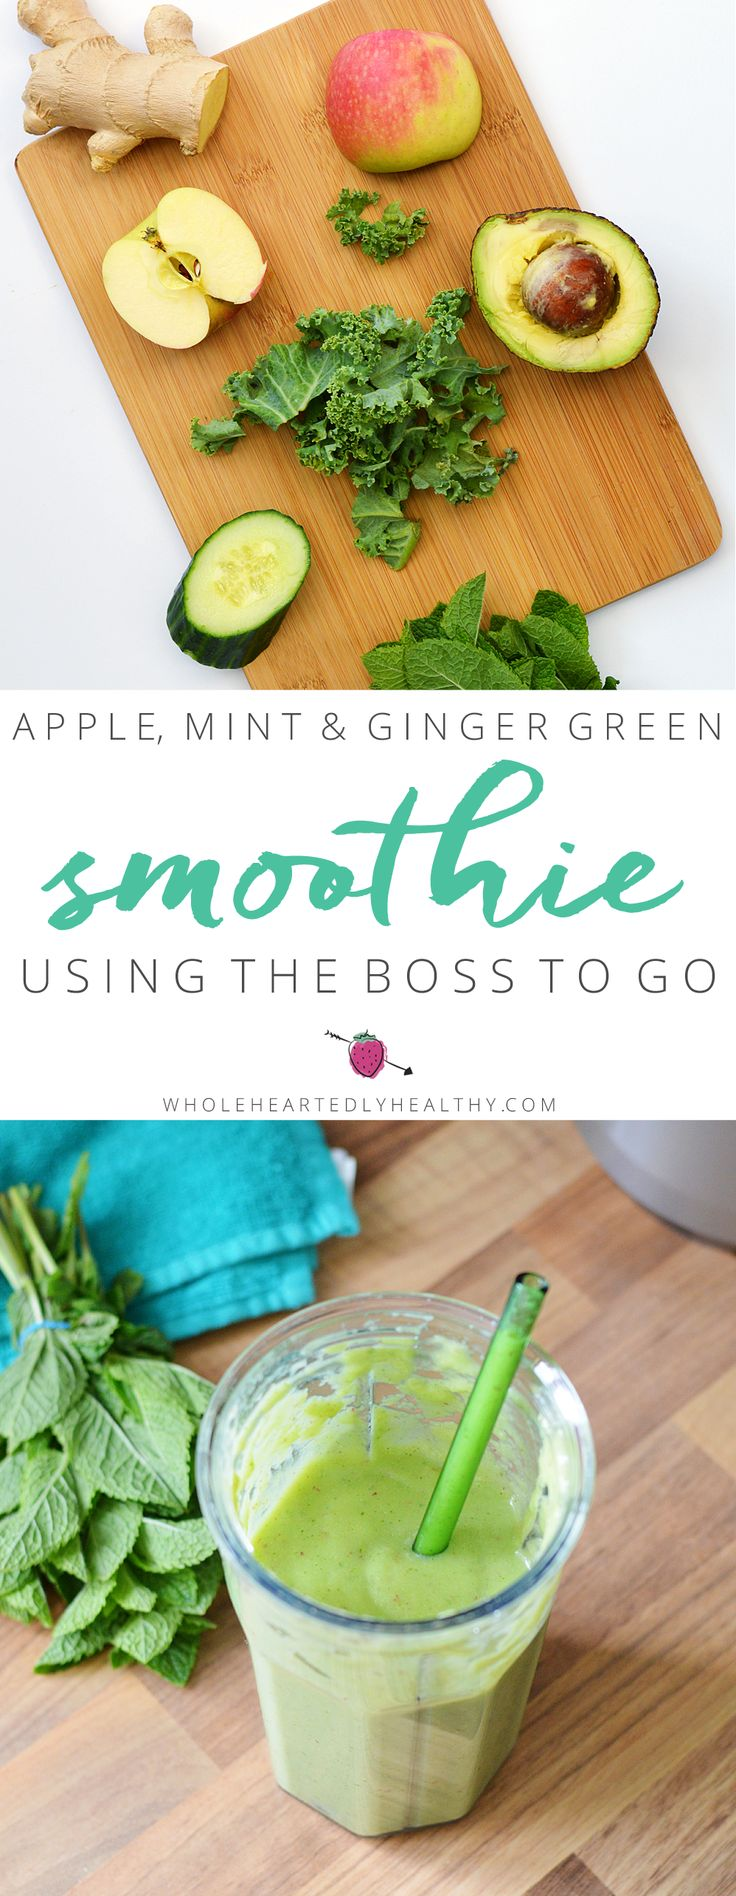 124 best wholeheartedly healthy recipes images on pinterest apple mint and ginger green smoothie forumfinder Choice Image